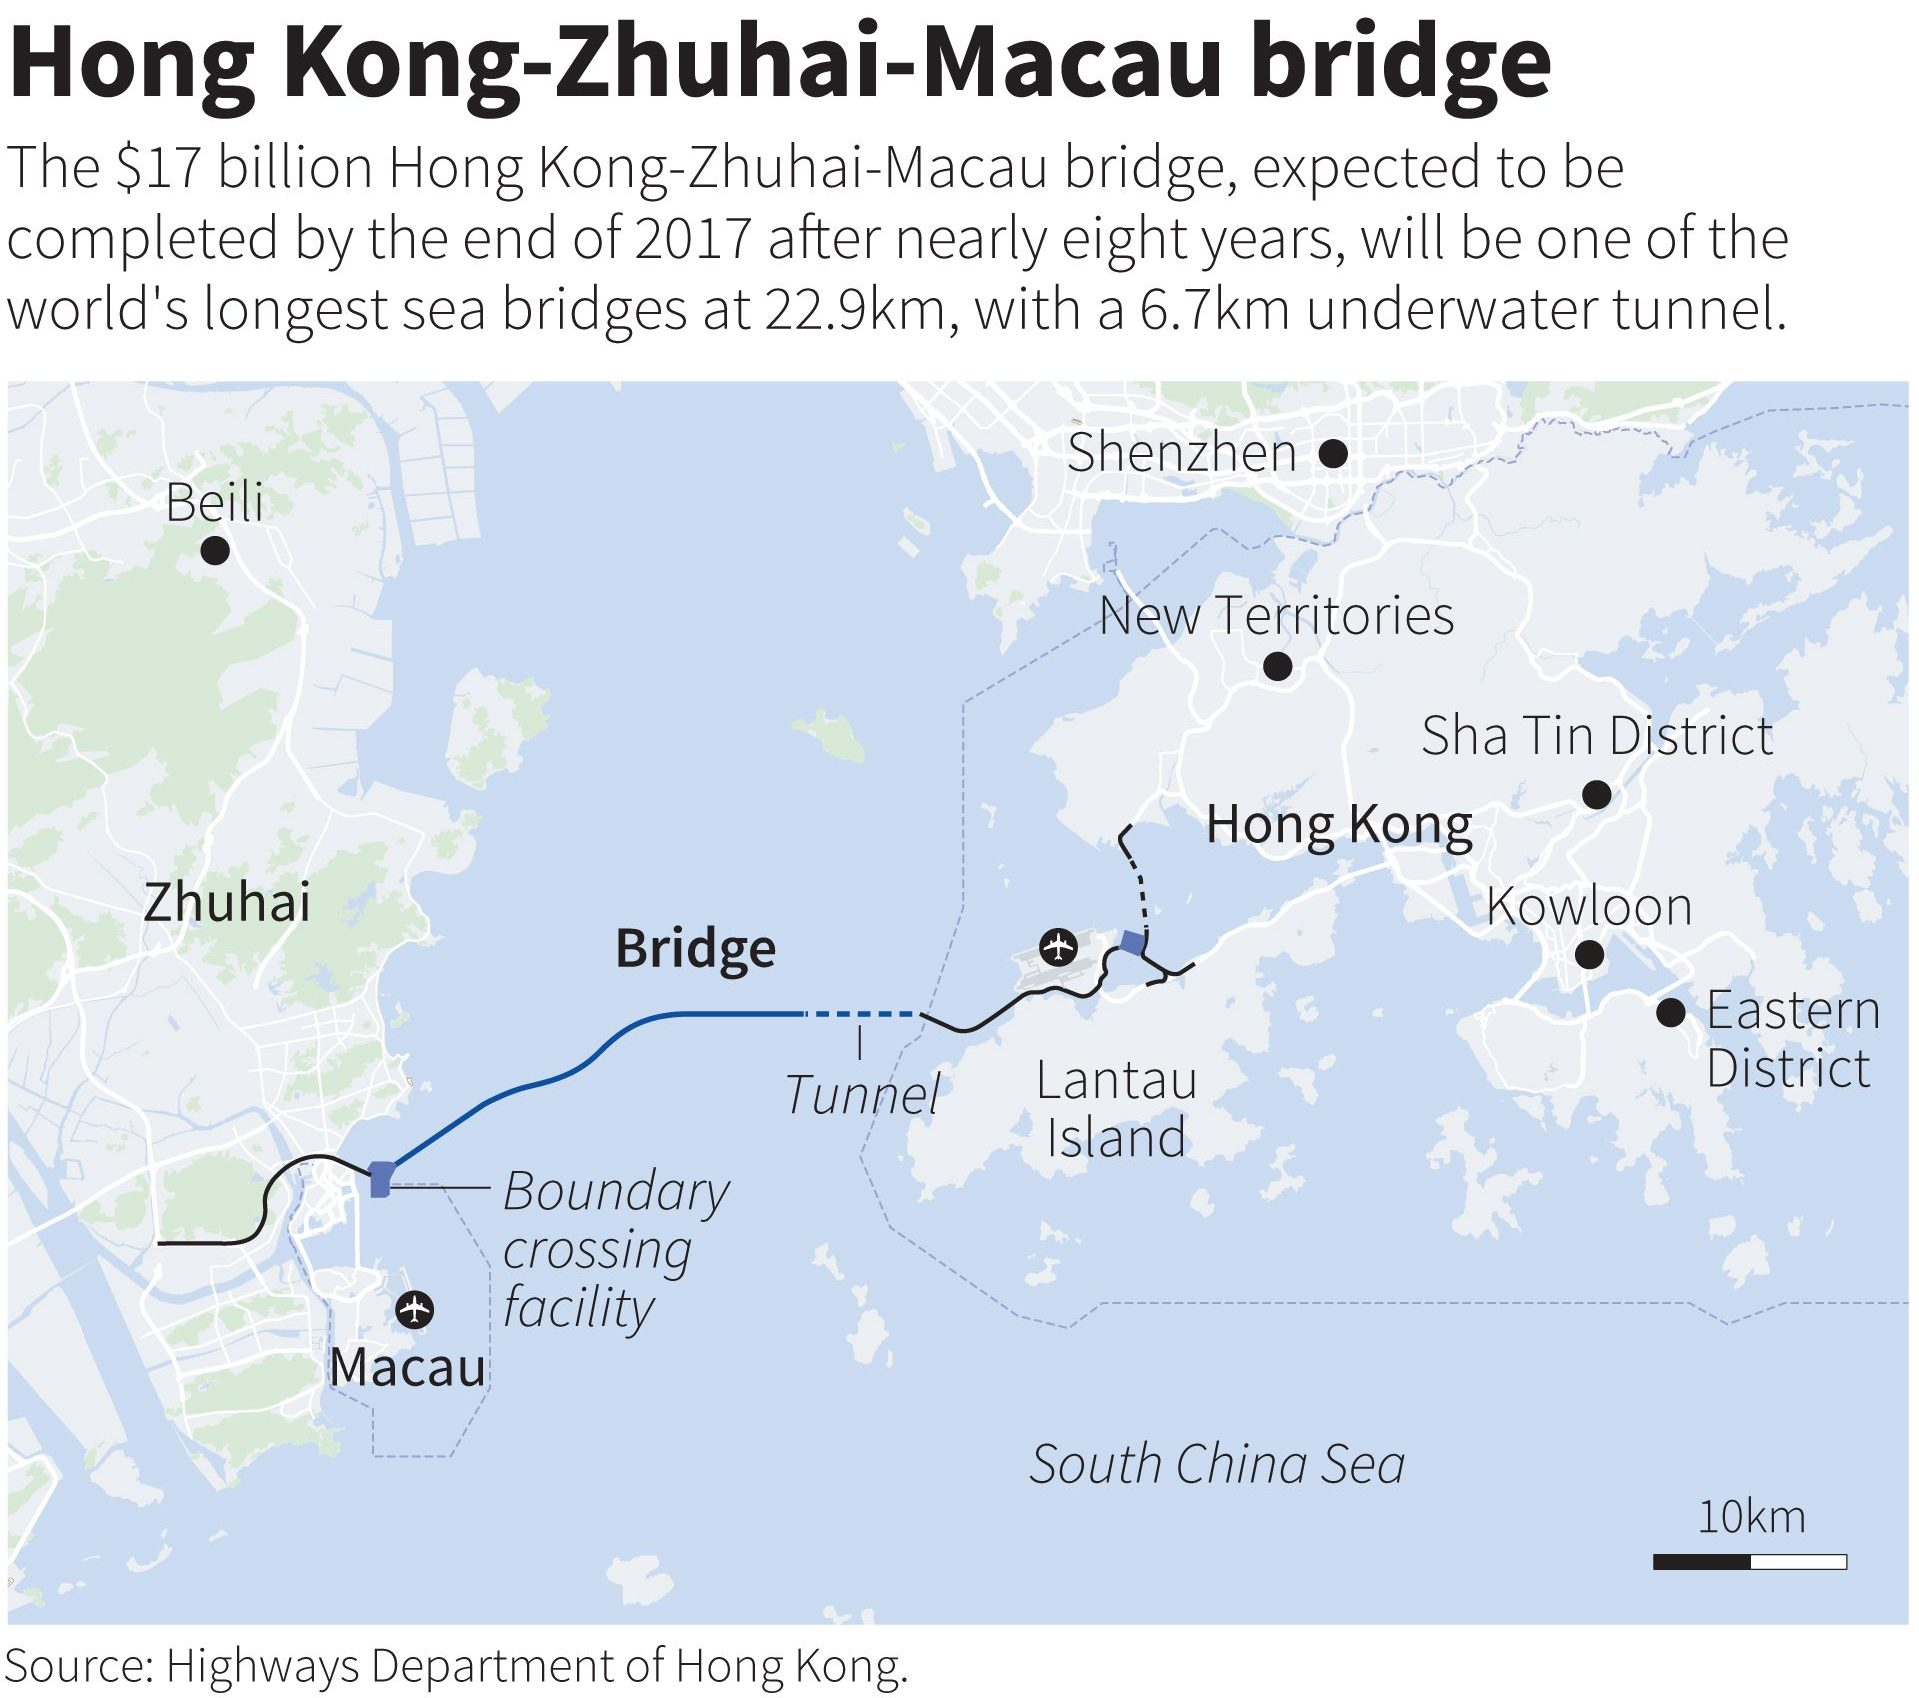 The Hong Kong-Zhuhai-Macau bridge.